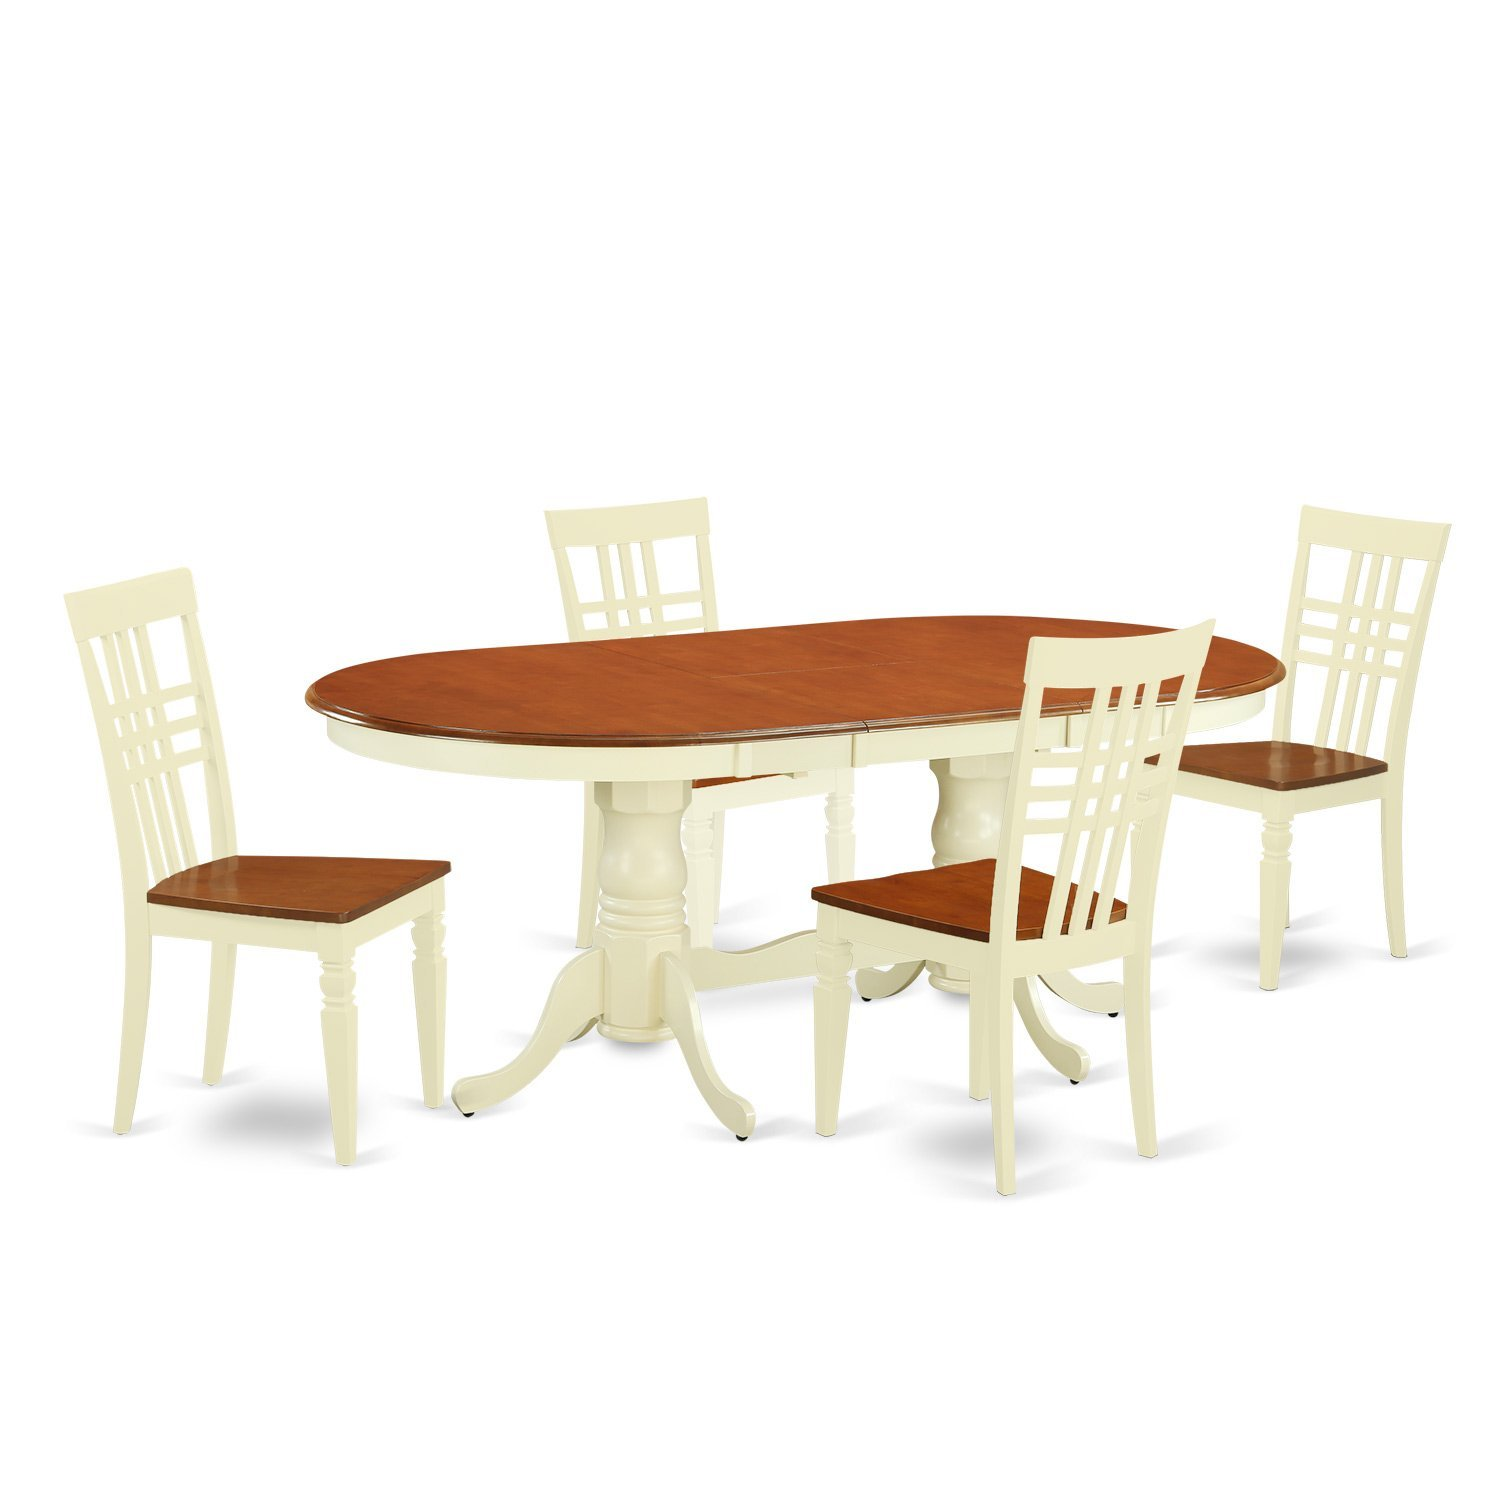 East West Furniture PVLG5-BMK-W 5 PC Dinette Table Set with One Plainville Dining Room Table & Four Kitchen Chairs in Buttermilk & Cherry Finish